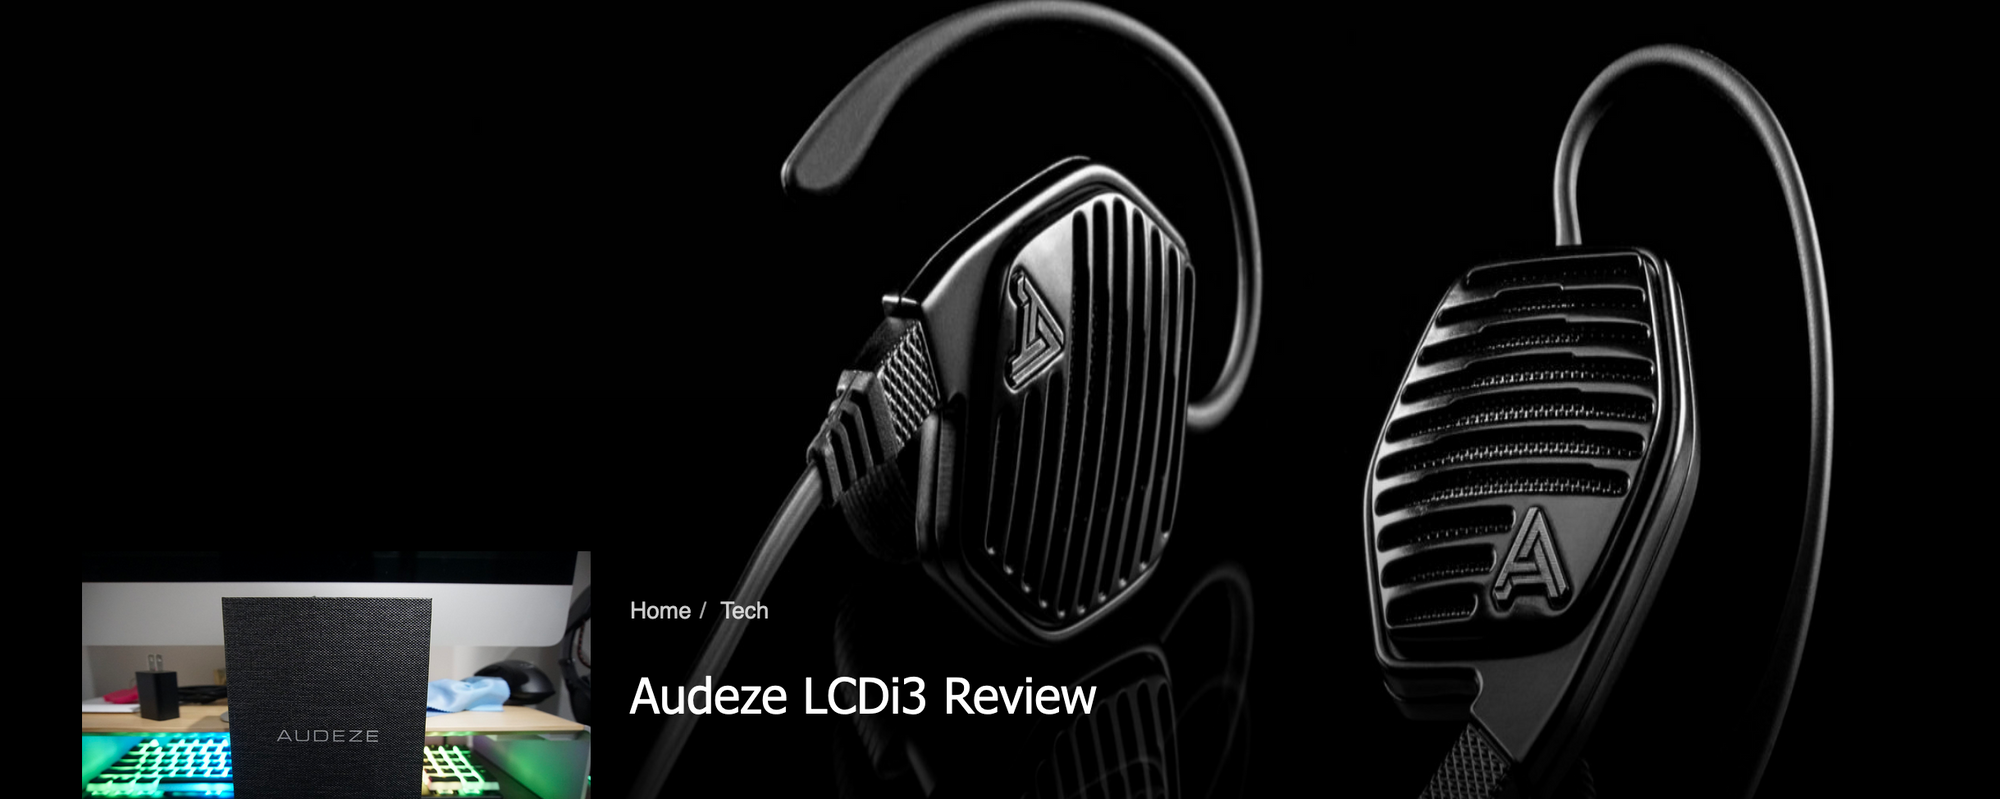 Audeze LCDi3 Gets Editor's Choice from Just Push Start